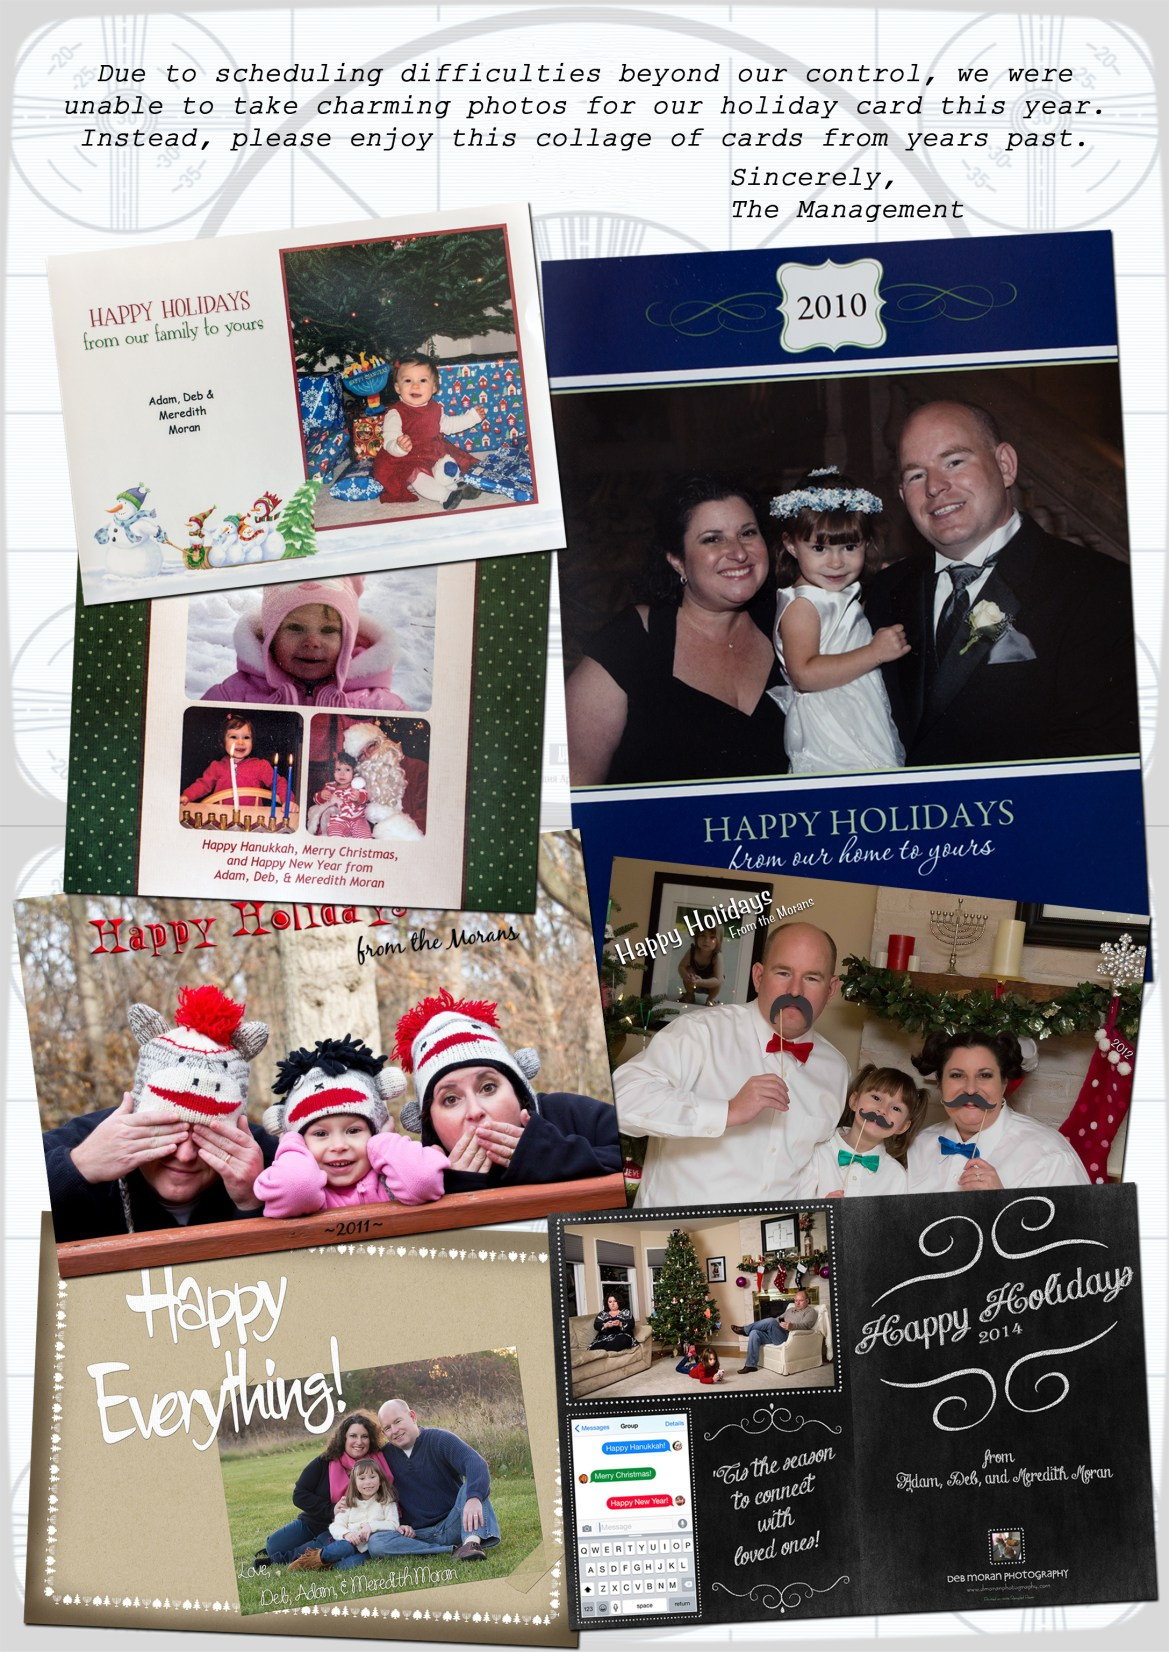 The inside of our holiday card for 2015